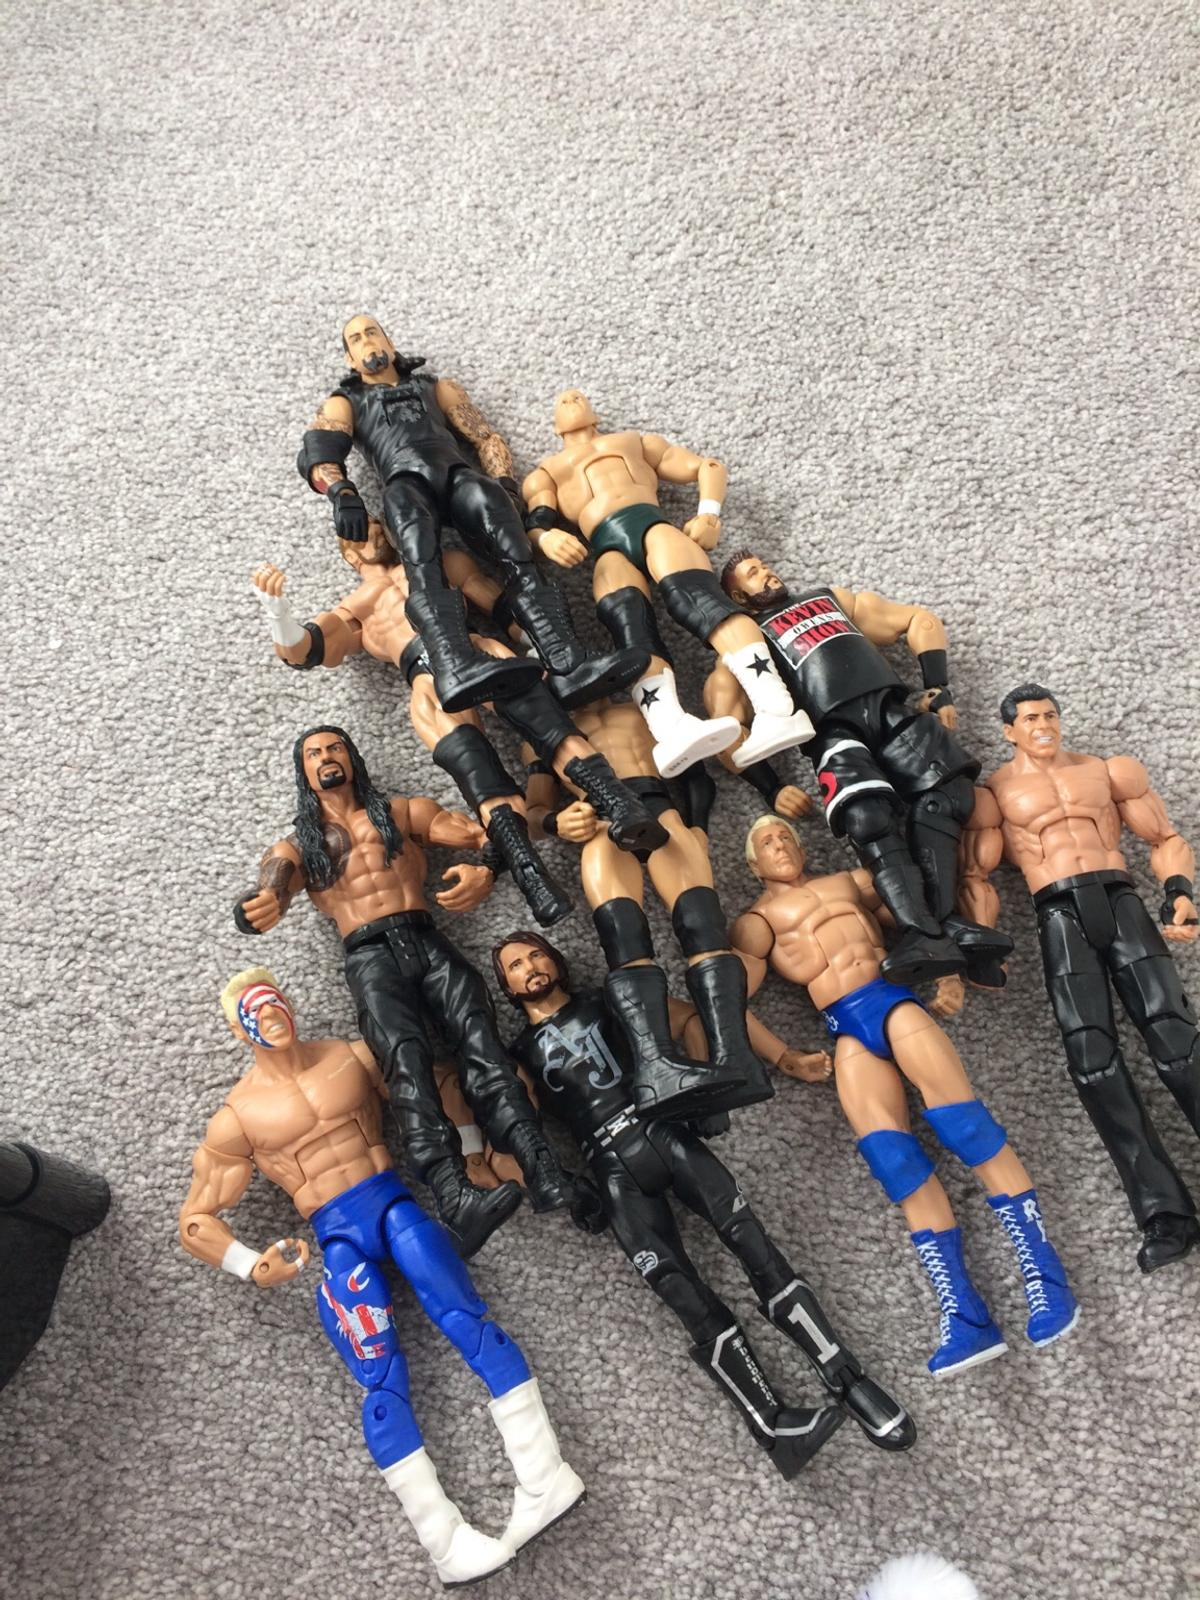 10 wwe action figures with accessories such as belts(titles) and a wrestling ring